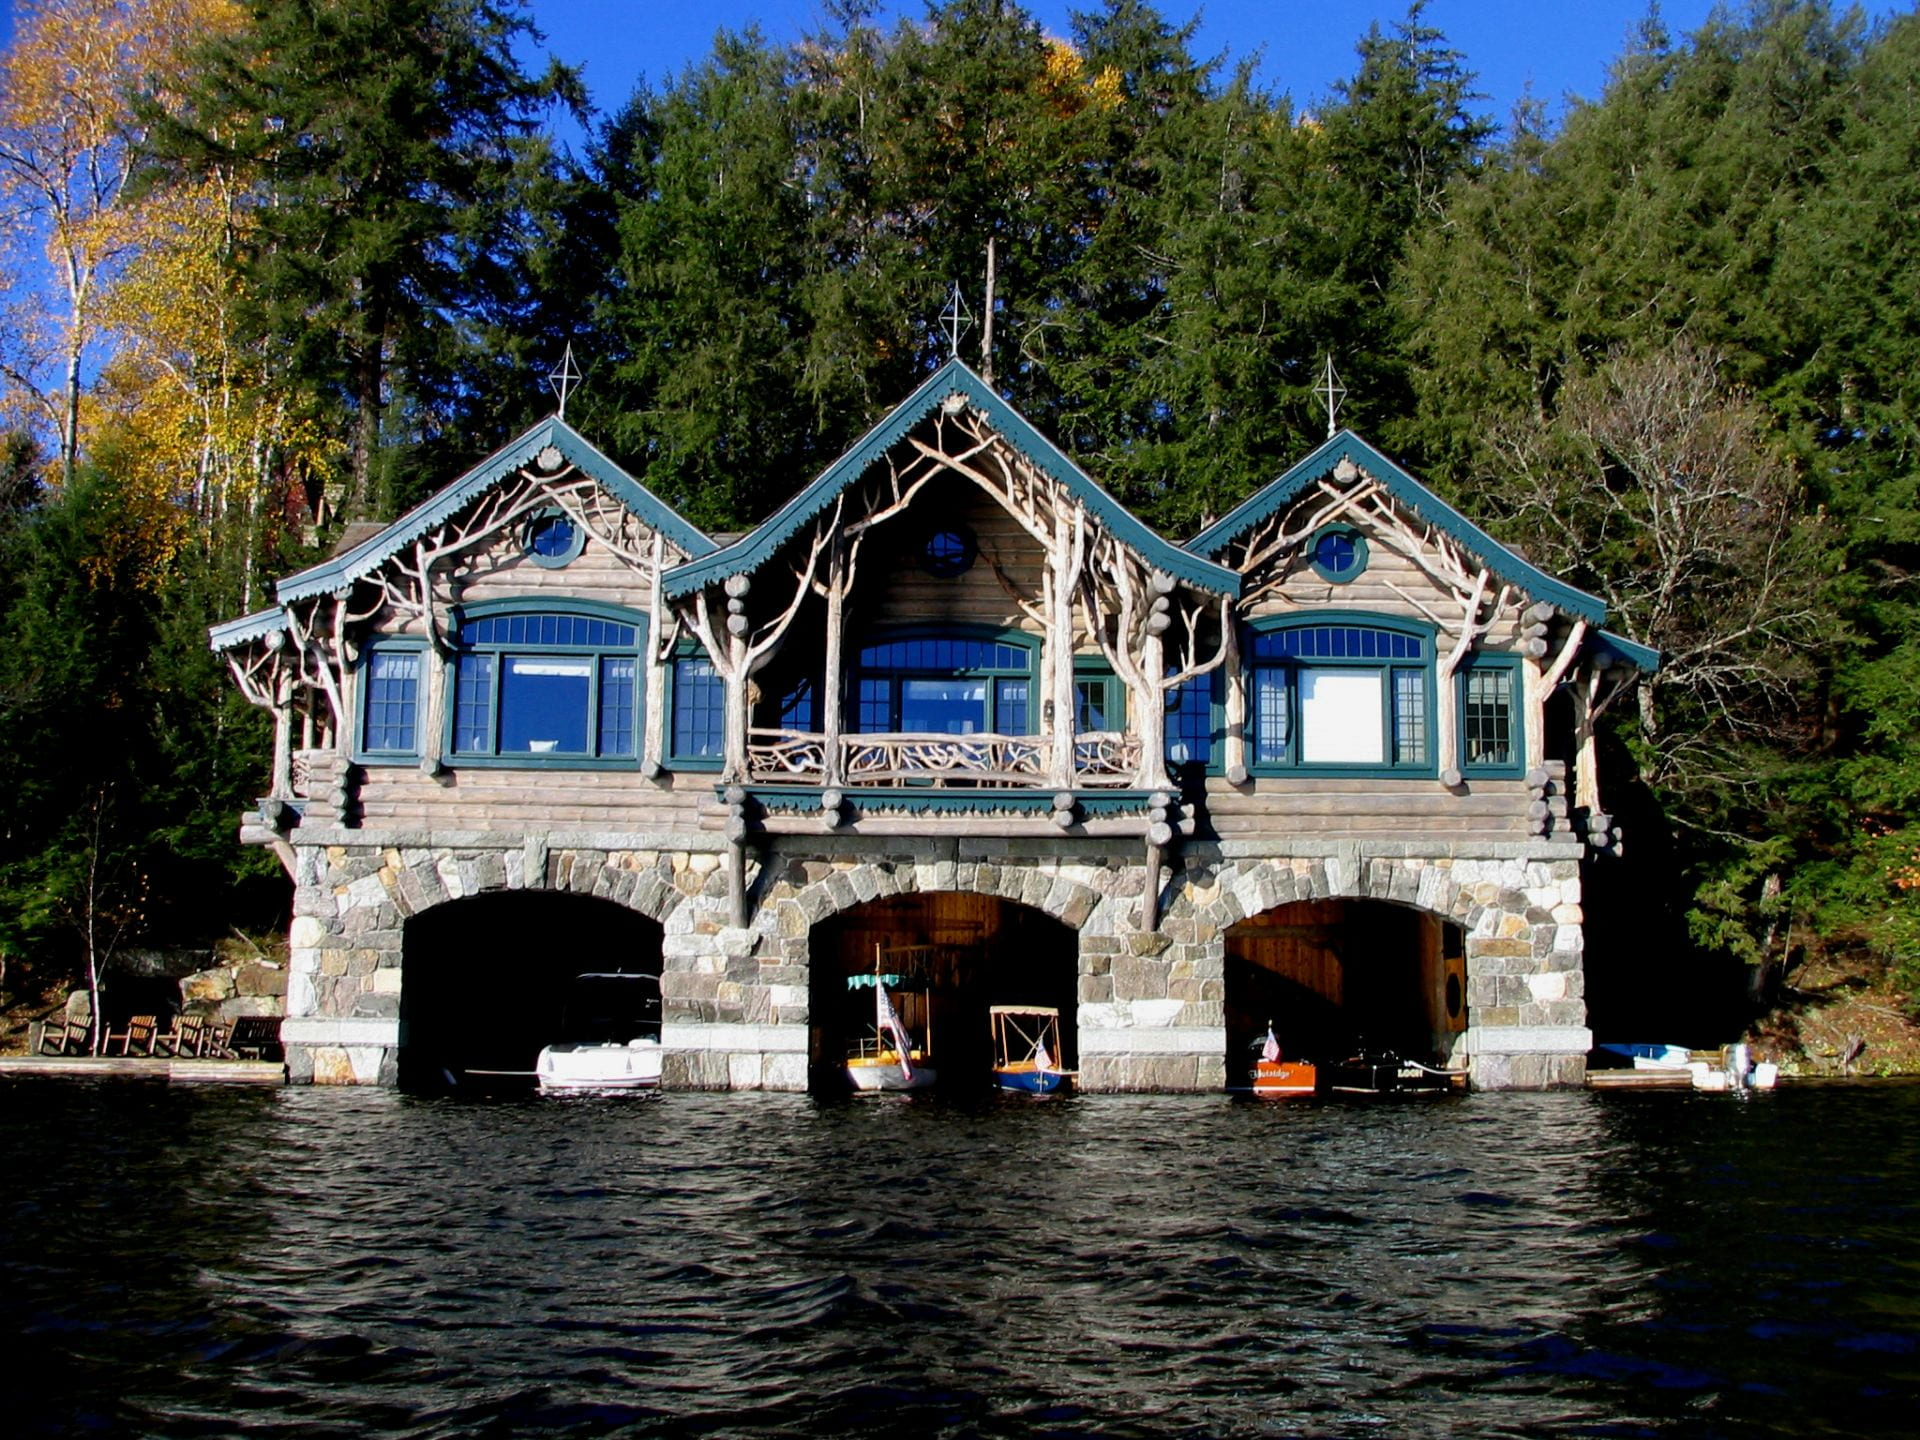 Fig. 11. Two-story boathouse with Adirondack-style architecture.